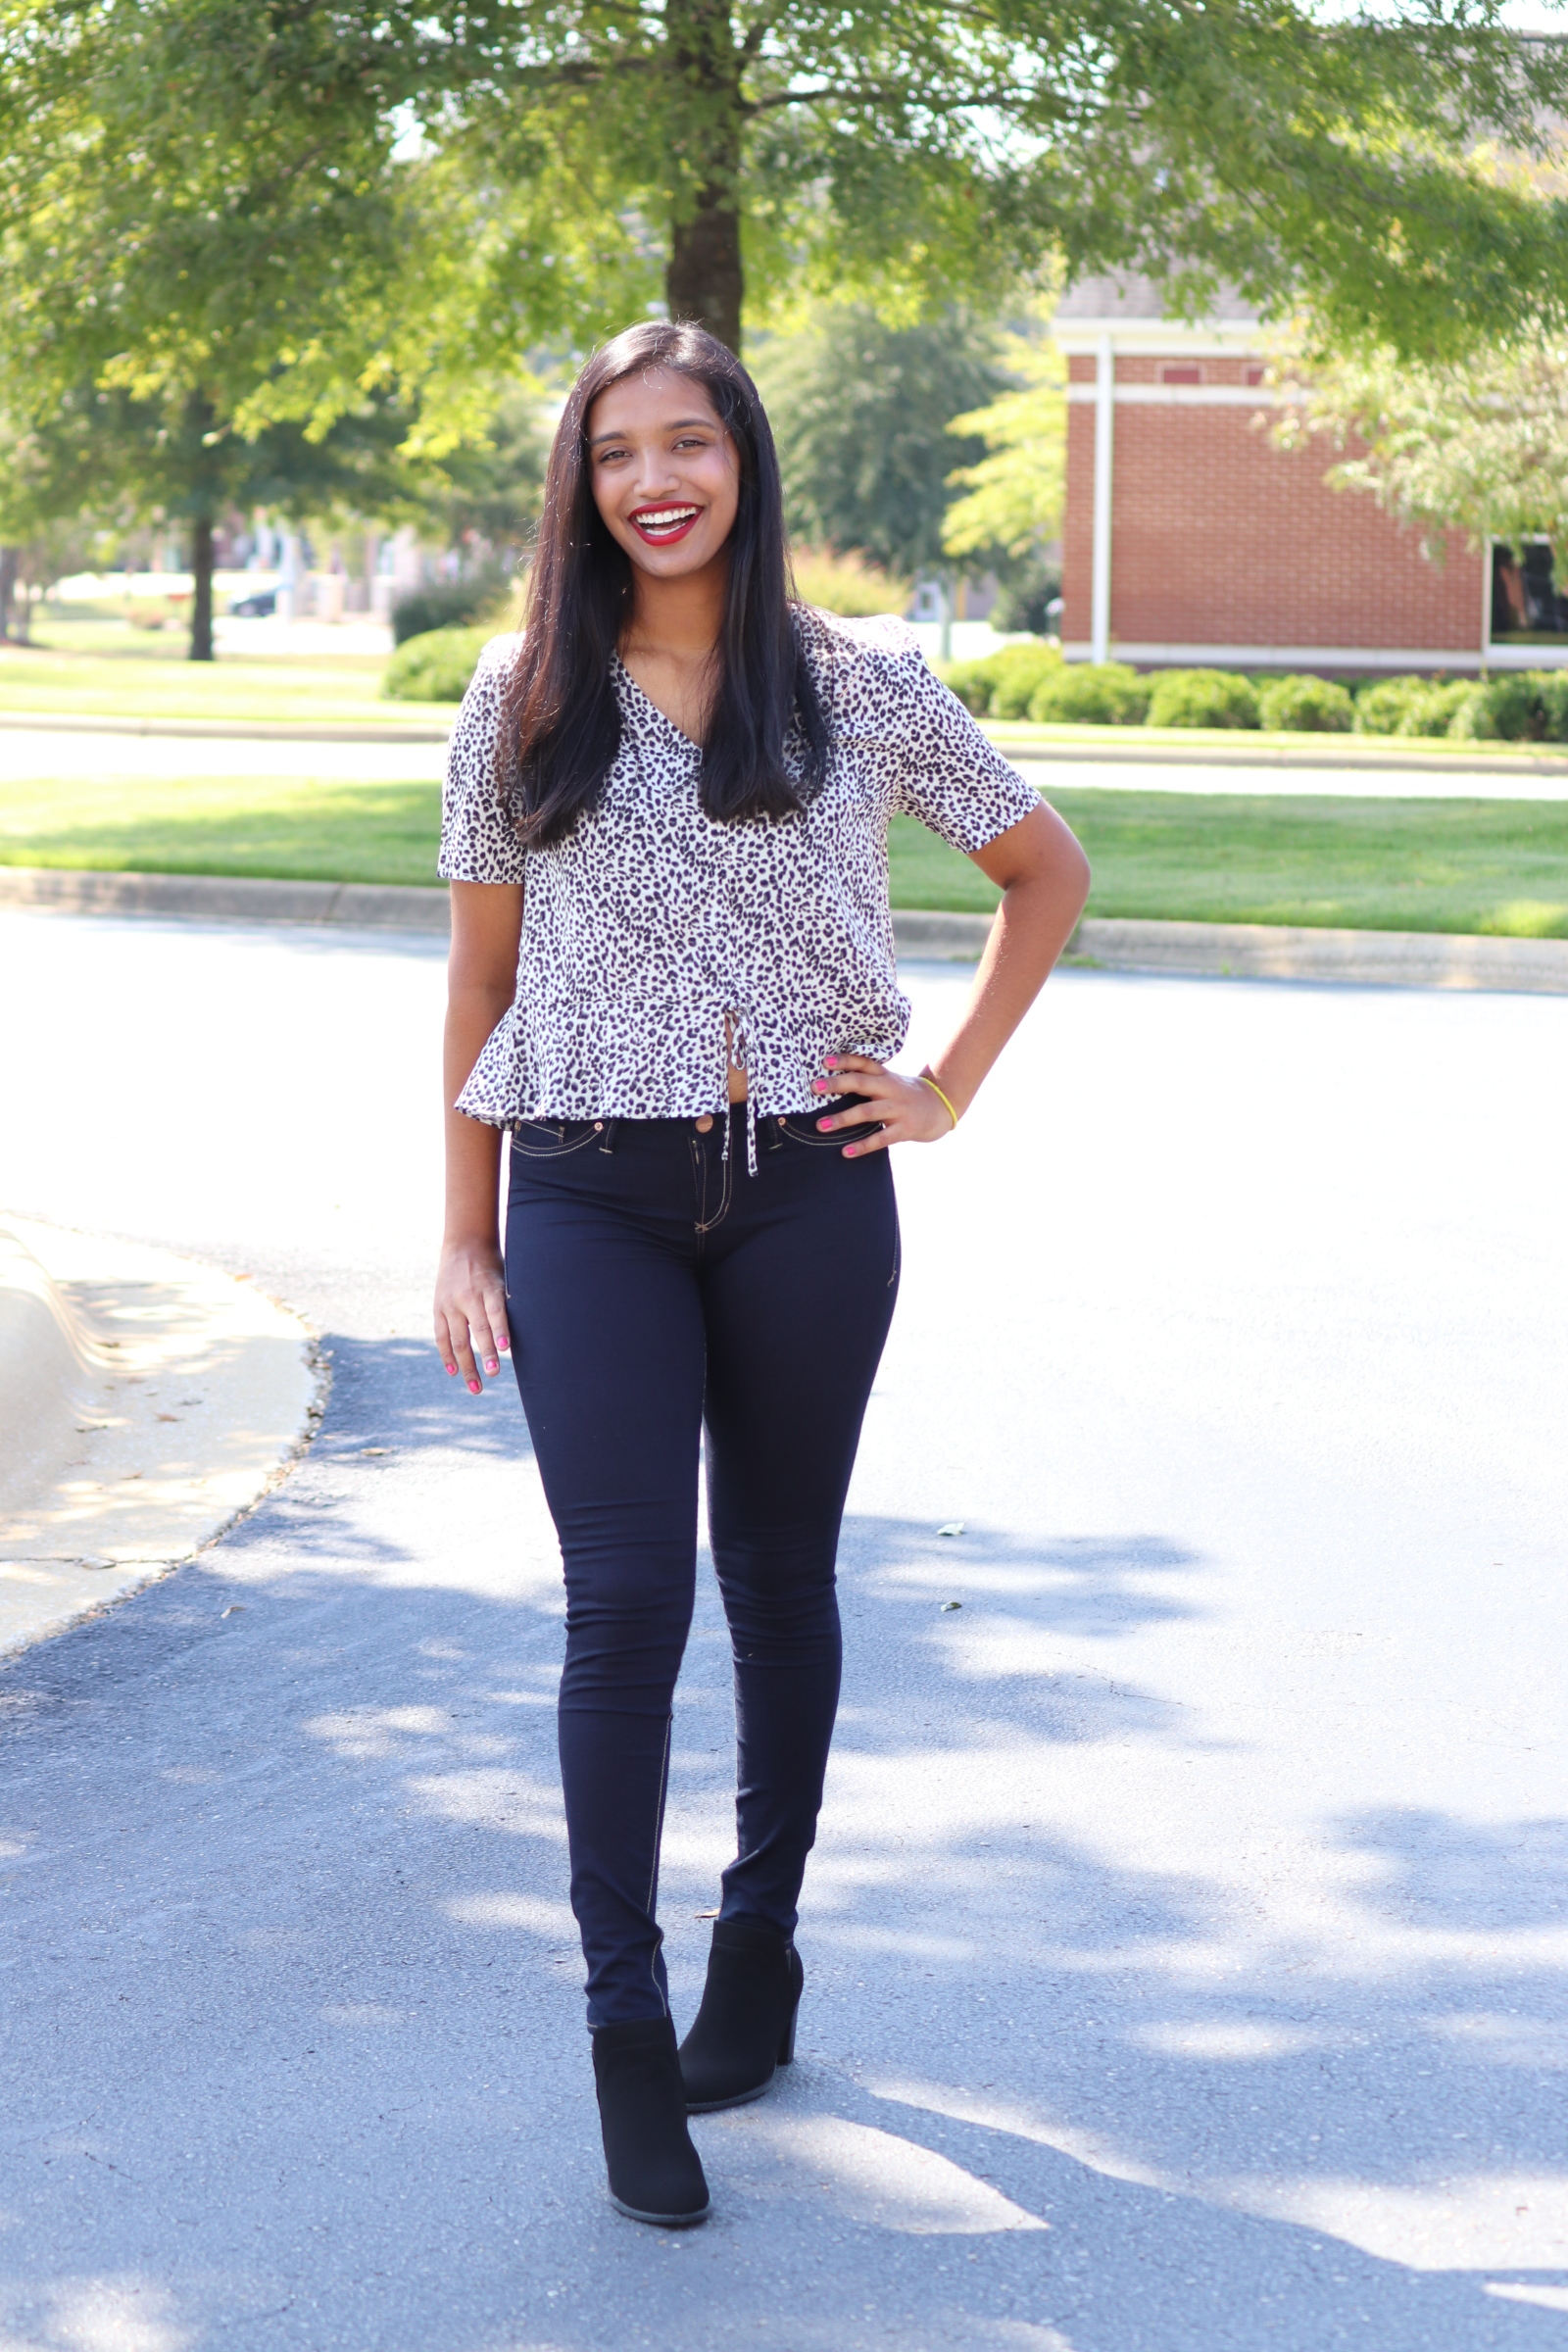 Reshu is rocking one of our favorite fall transition outfits. This leopard peplum crop top is lightweight and pairs perfectly with our dark wash Dear John denim and classic black booties. Once the cooler temps hit, just add a cropped black jacket or long cardigan and you're all set.  Grab this outfit in store today!